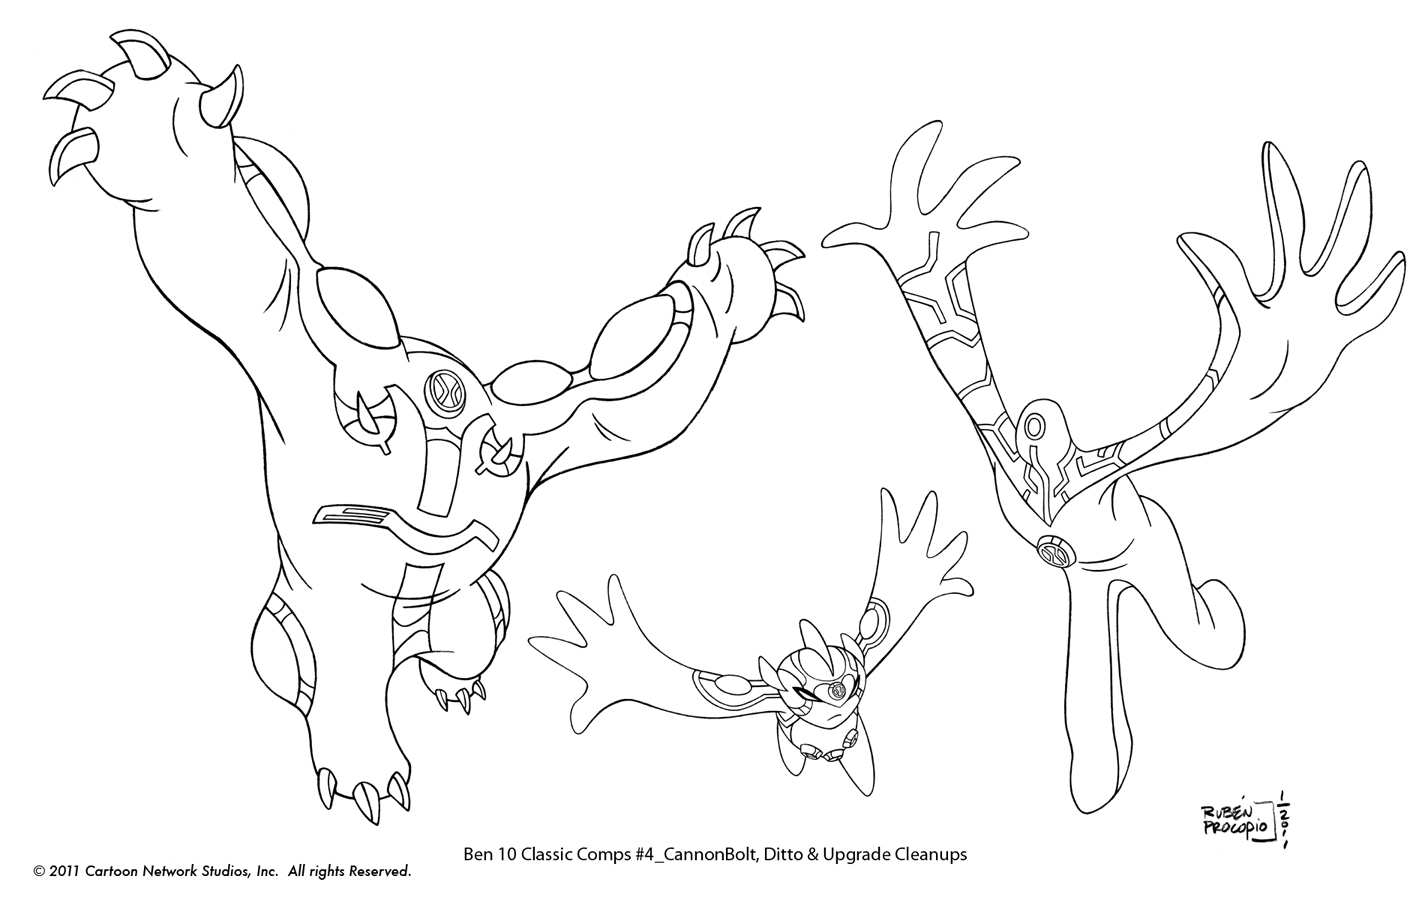 How to draw ben10 alien xlr8 - Masked Avenger Studios Ben 10 Classic Comps Roughs And Clean Ups